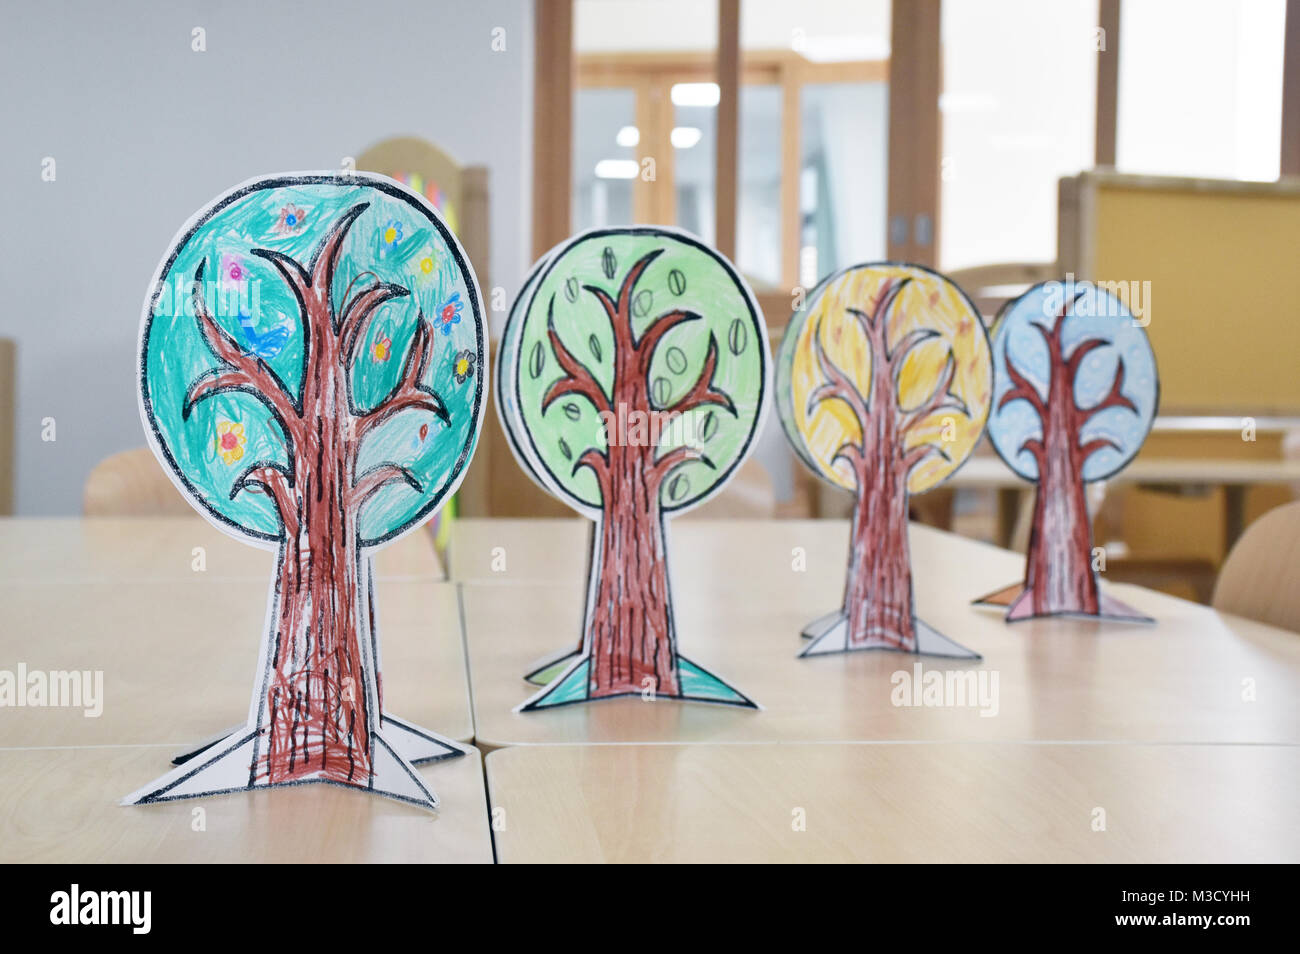 Season craft for young children trying to remember Spring, Summer, Autumn, Fall and Winter - Stock Image